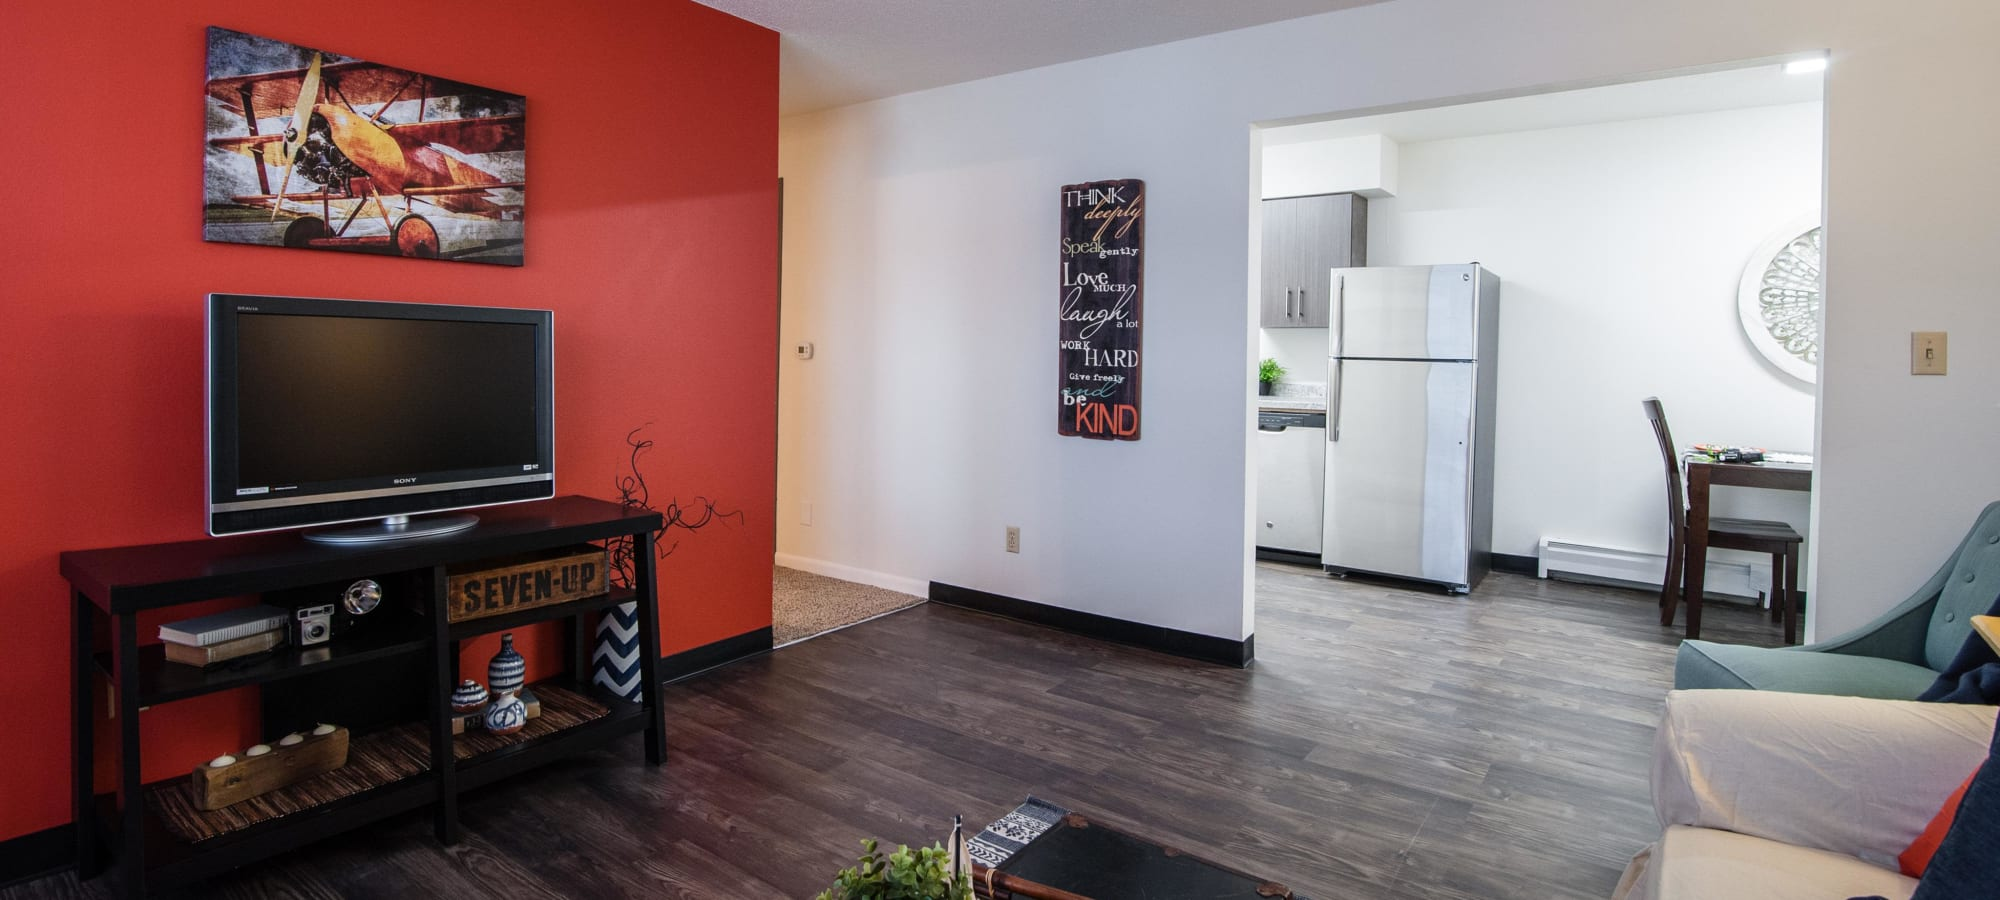 Apartments at South Meadow Apartments & Townhomes in Ames, Iowa